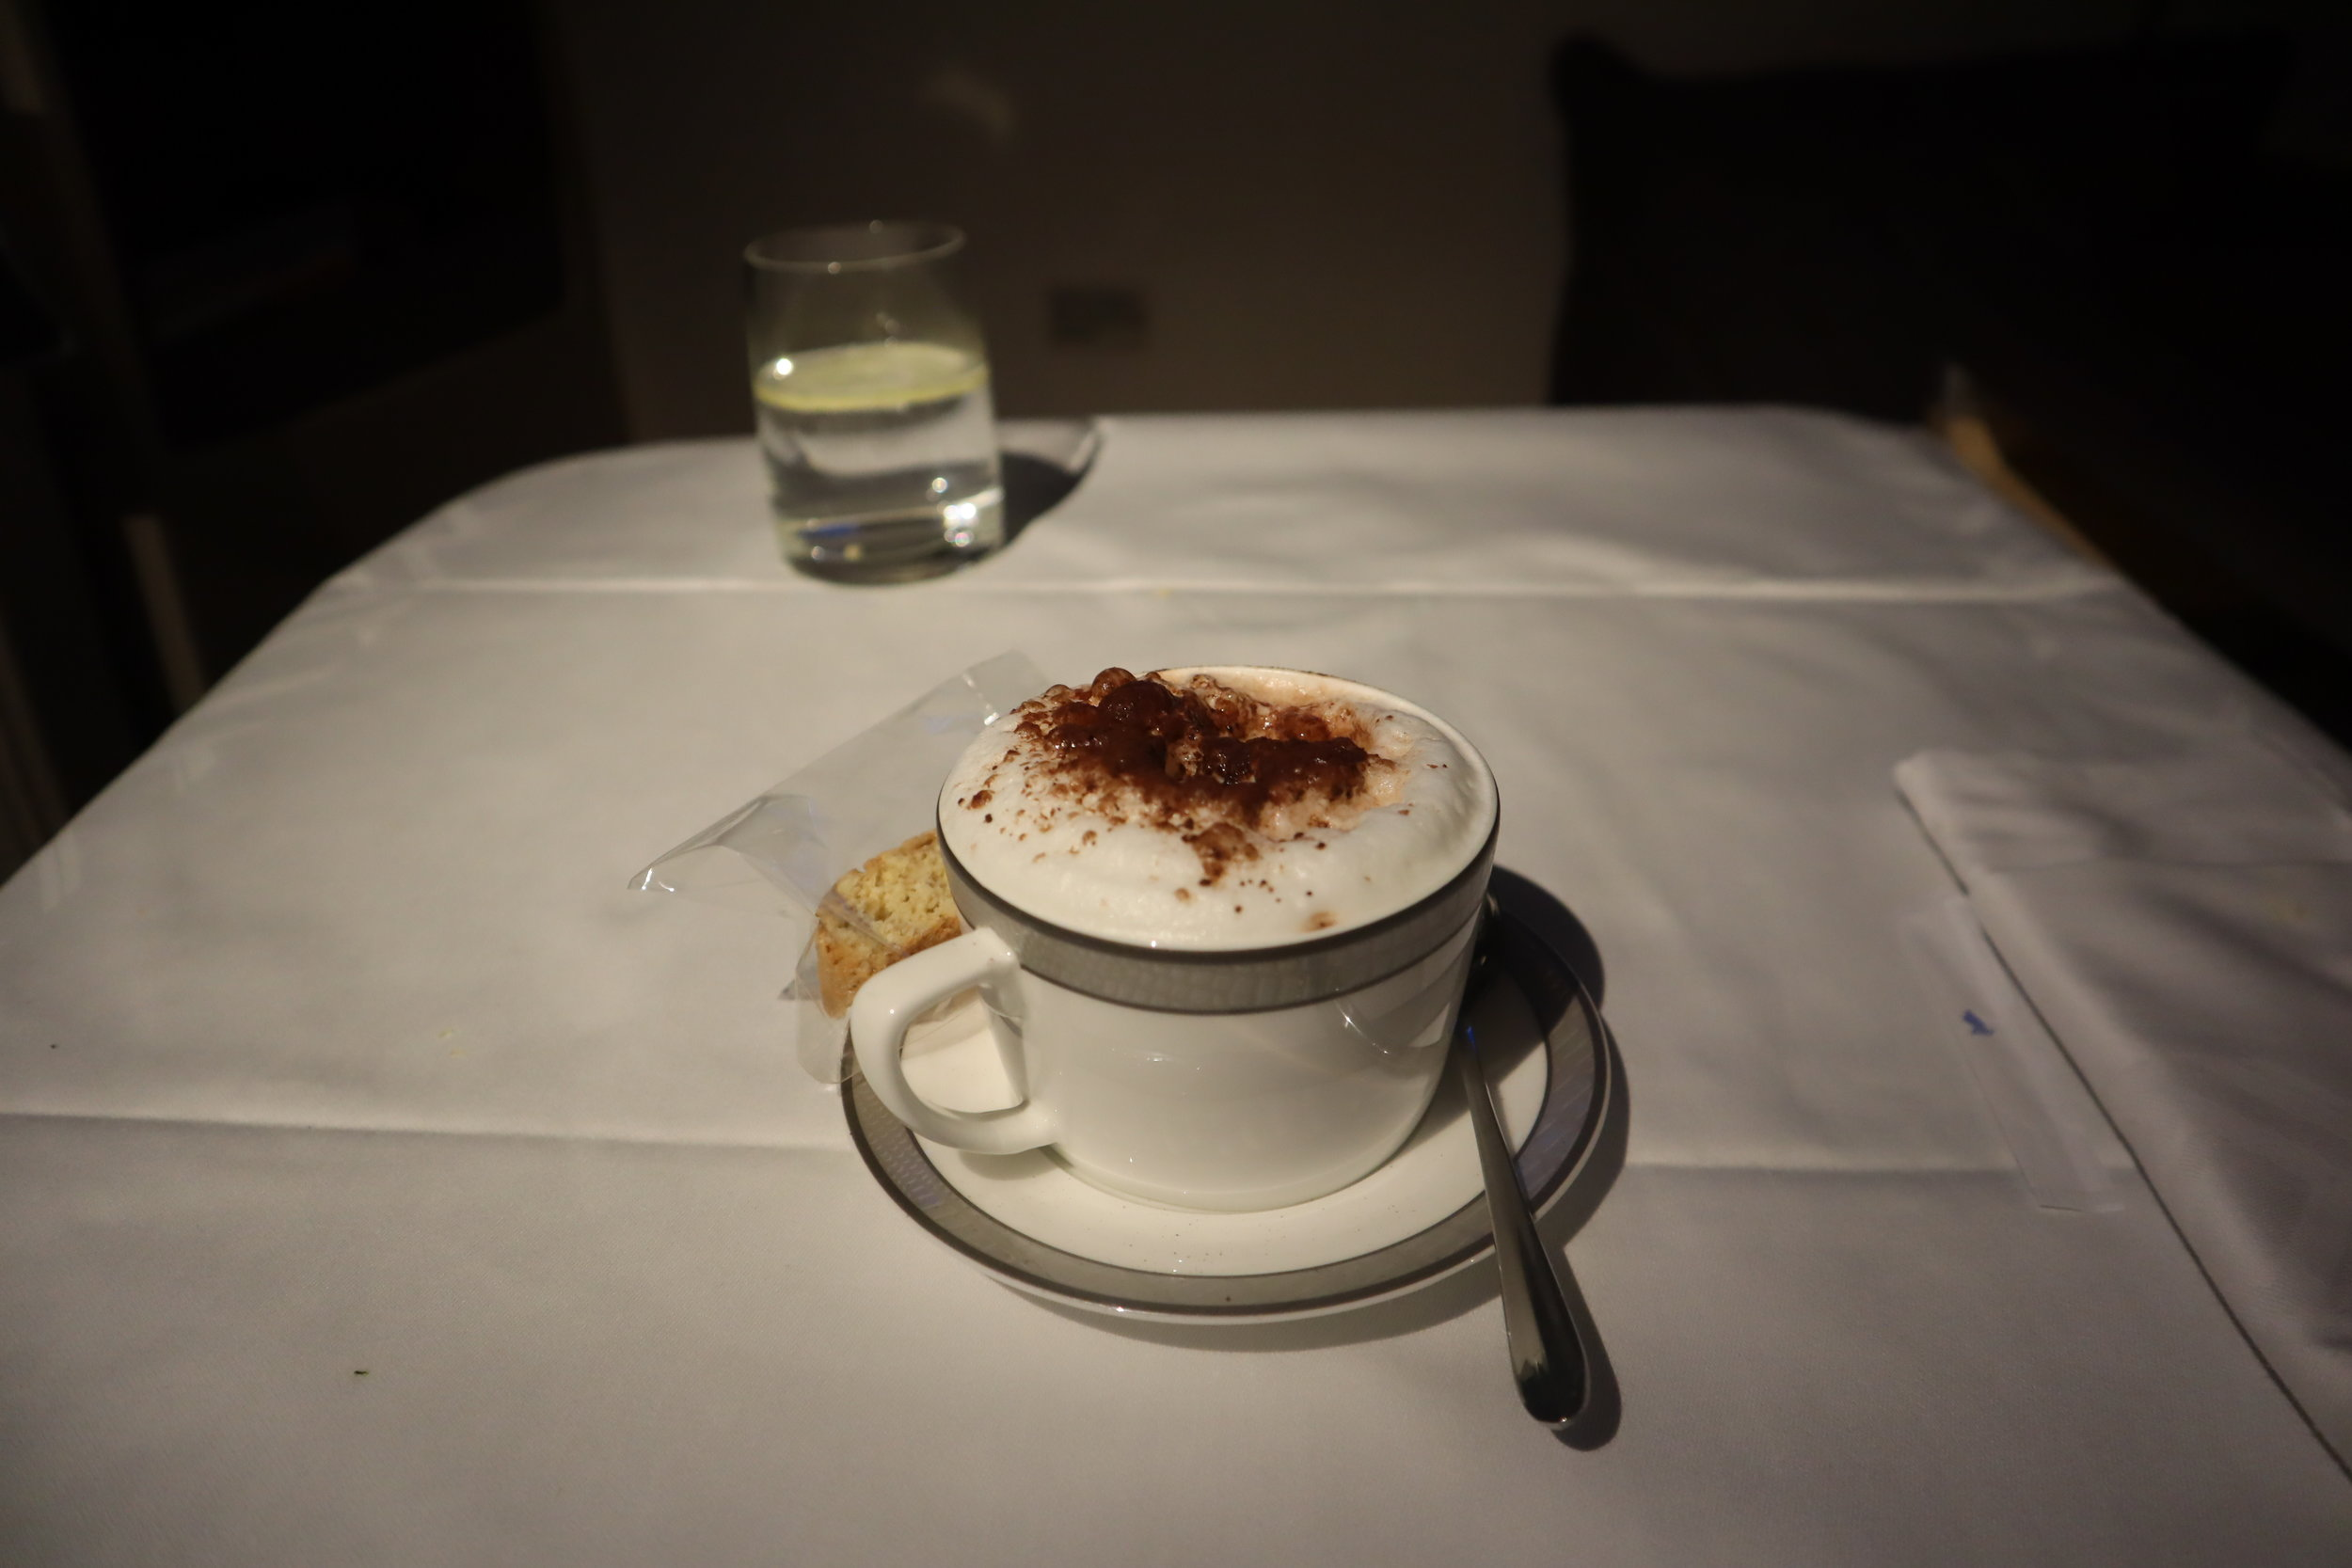 Singapore Airlines Suites Class – Cappuccino